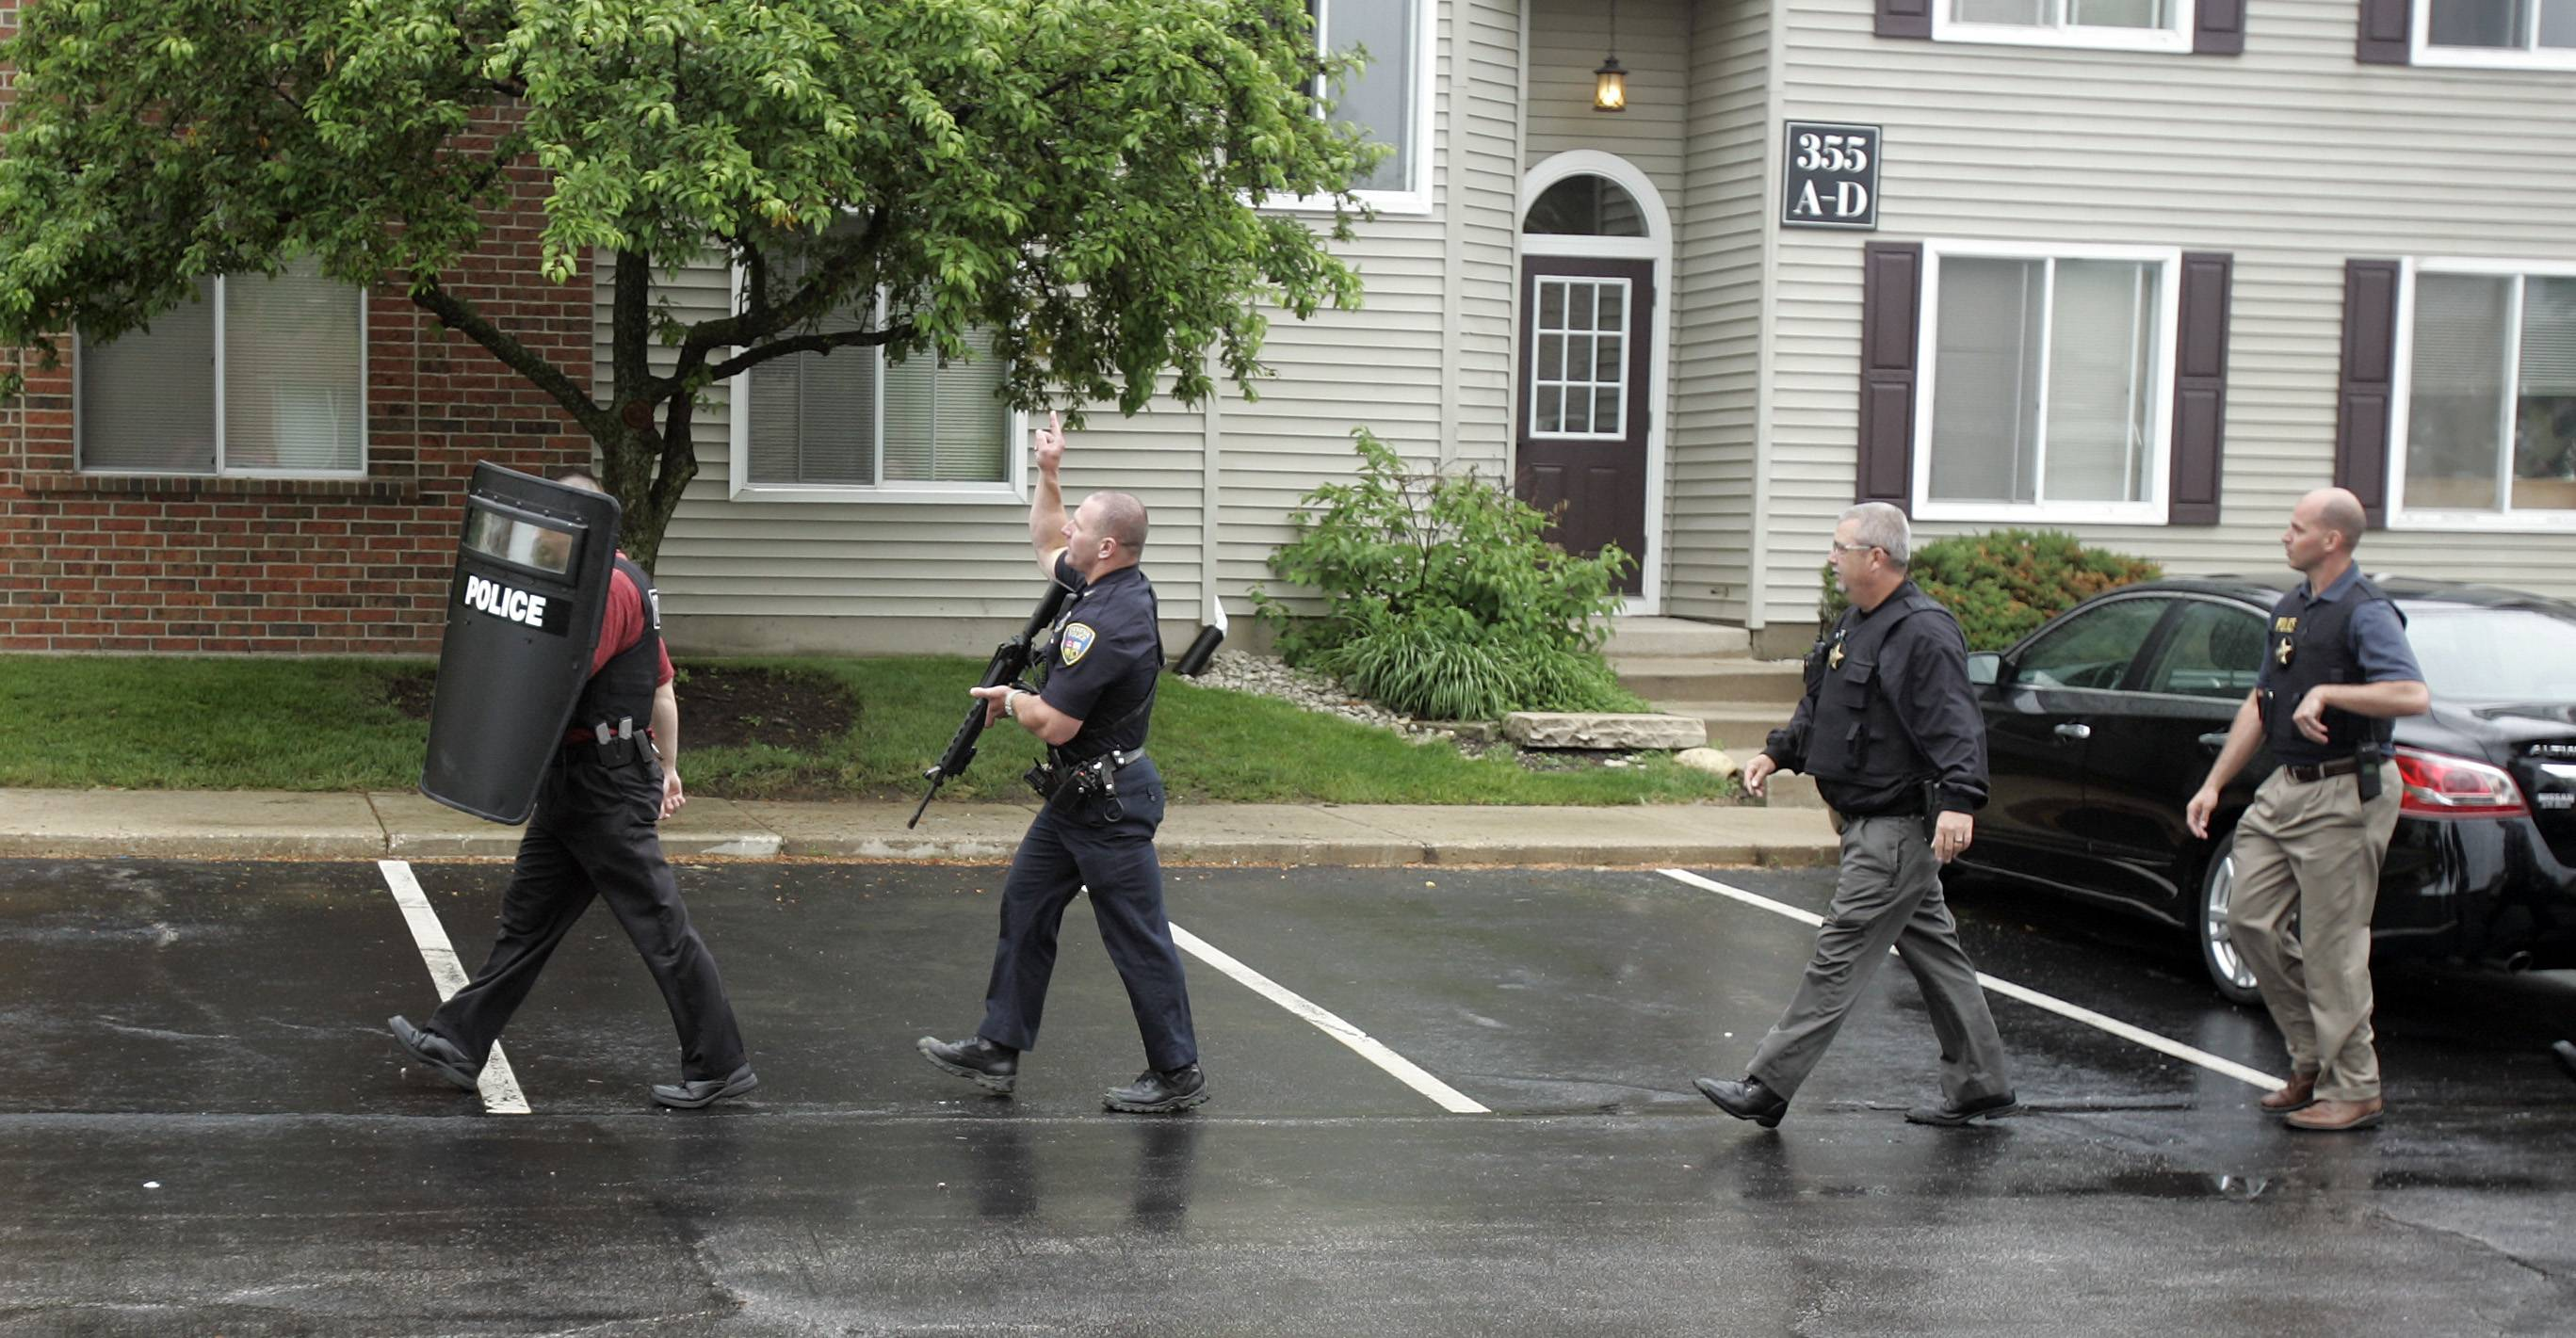 Officers from St. Charles, Geneva, Batavia and Sugar Grove move into position Wednesday at Ashford At Geneva Apartment Homes to apprehend two people suspected of several robberies.